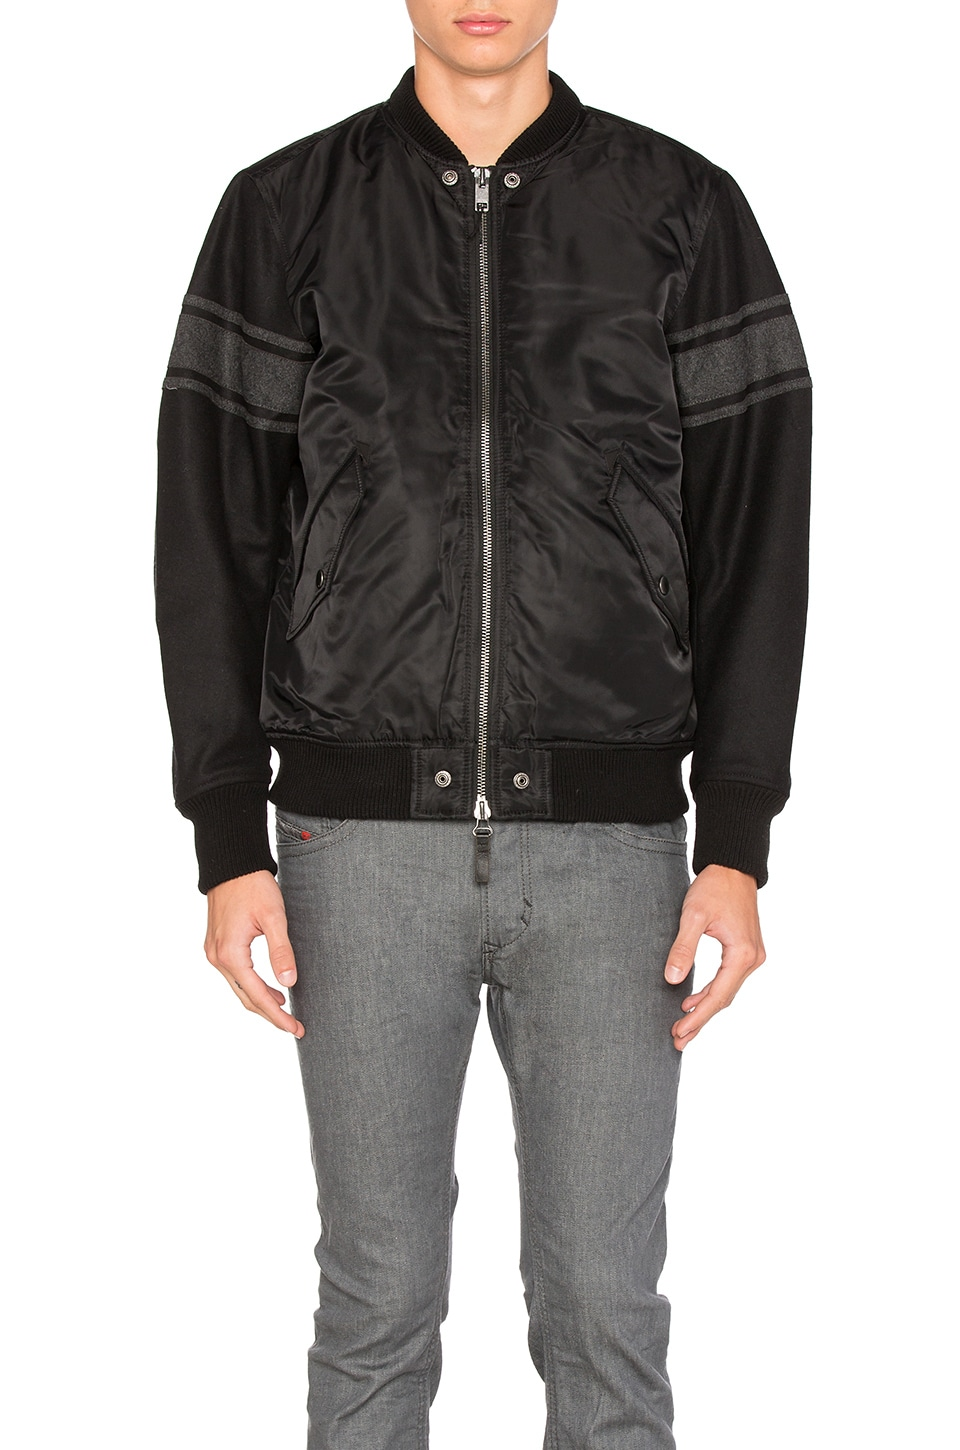 Kitt Type Jacket by Diesel